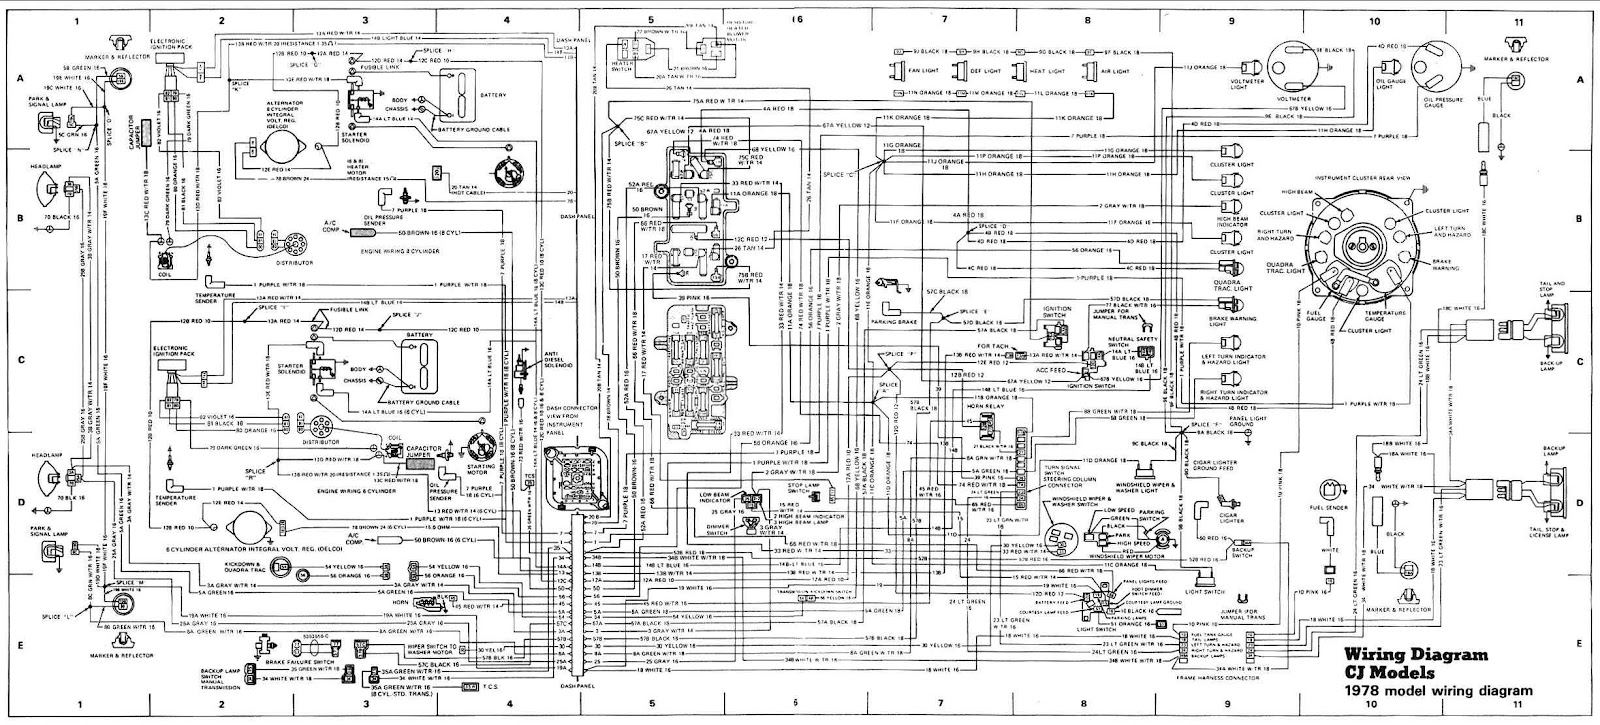 small resolution of jeep cj models 1978 complete electrical wiring diagram 2001 opel astra estate 2001 opel astra interior